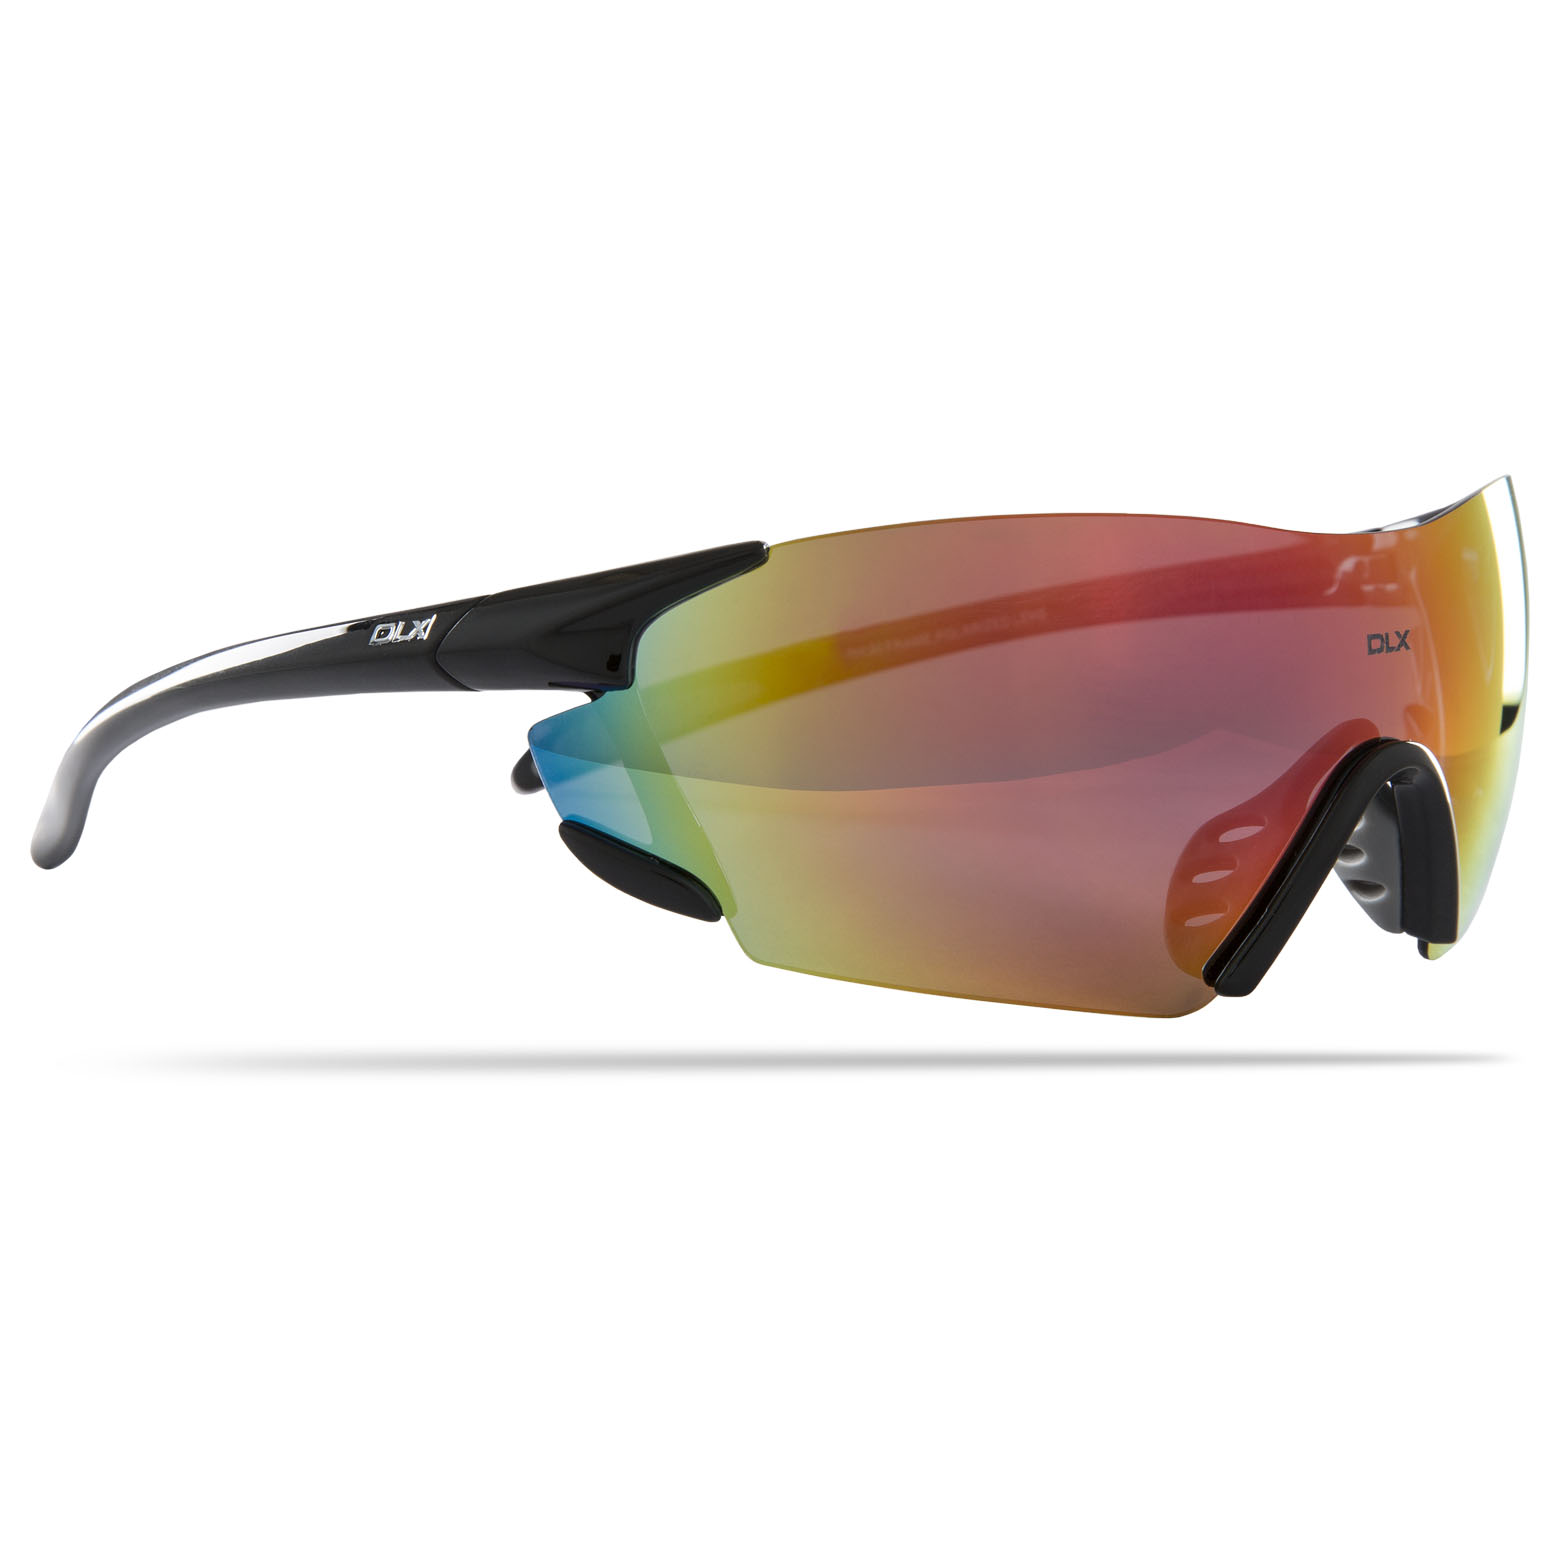 532755f237cbb Details about Trespass Amp DLX Sports Shades Mirror Lens Ski Sunglasses  with UV400 Protection